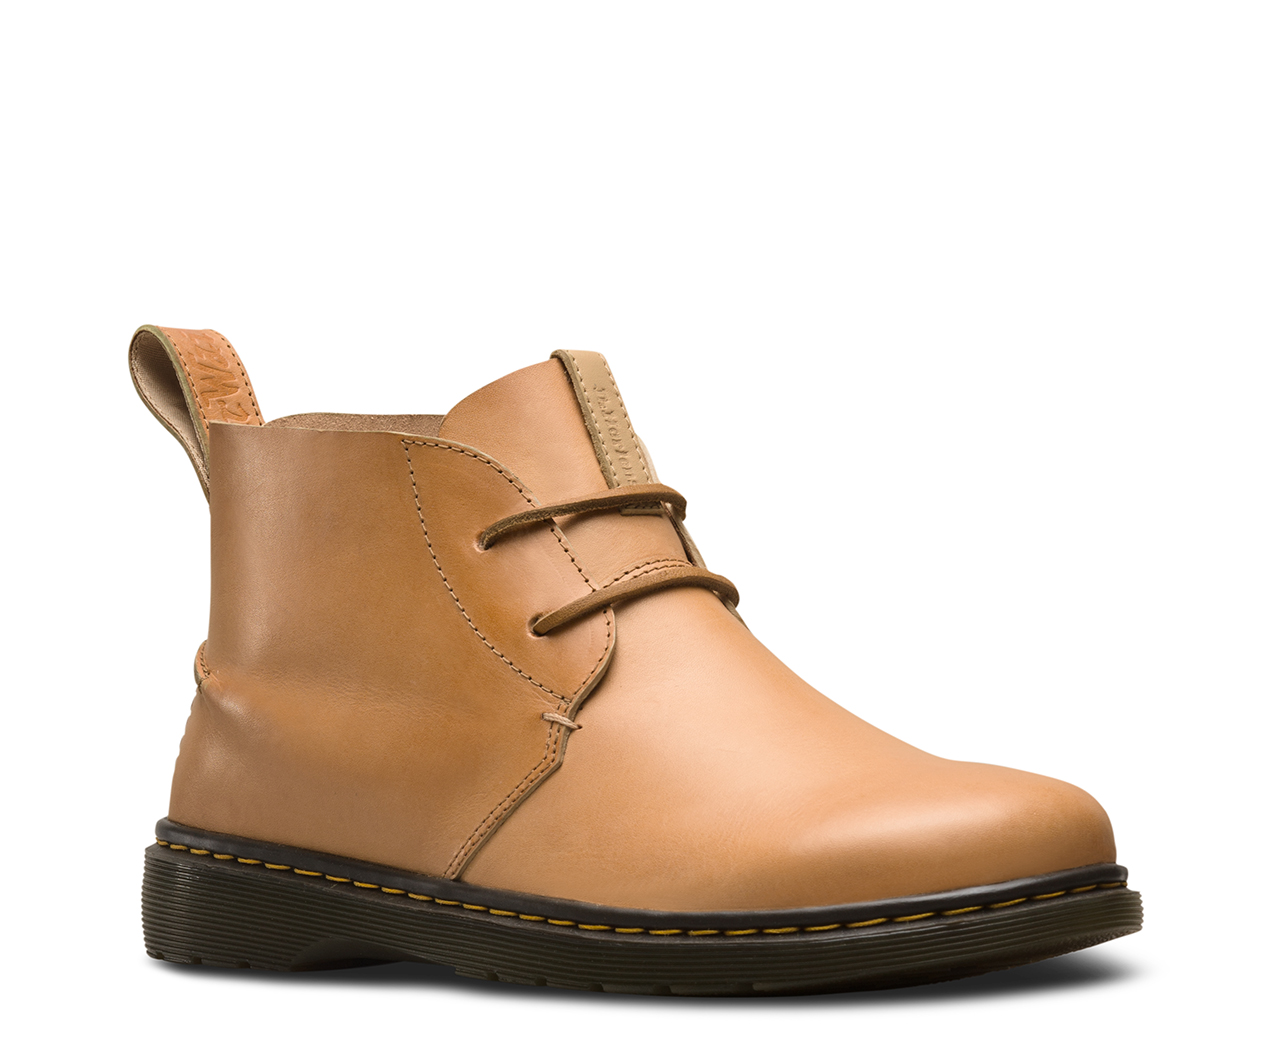 EMBER   AW18   The Official FR Dr Martens Store d72f532f6370